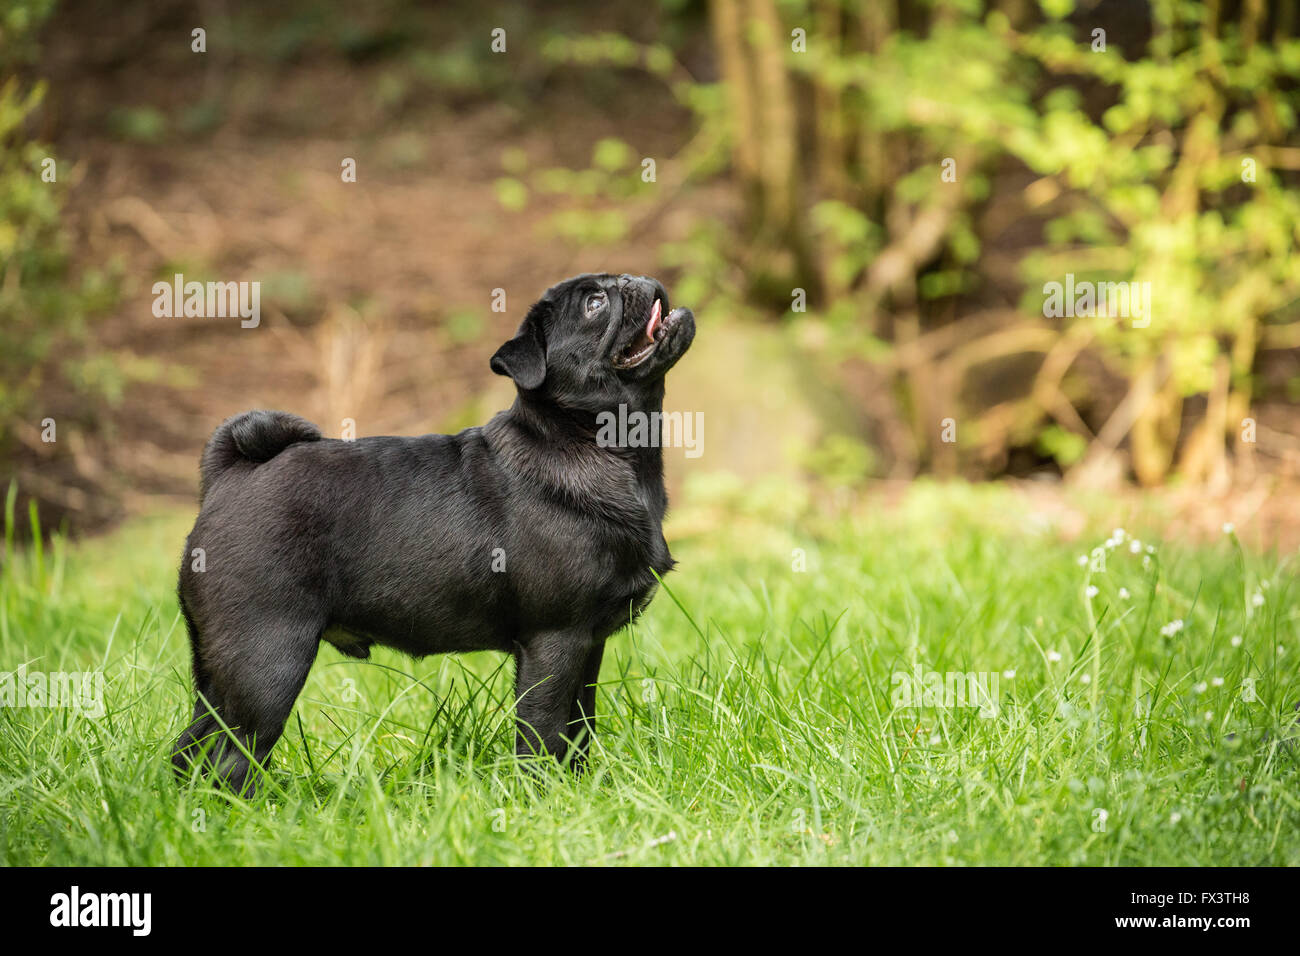 Kato, a black Pug puppy looking up from the lawn, in Issaquah, Washington, USA - Stock Image